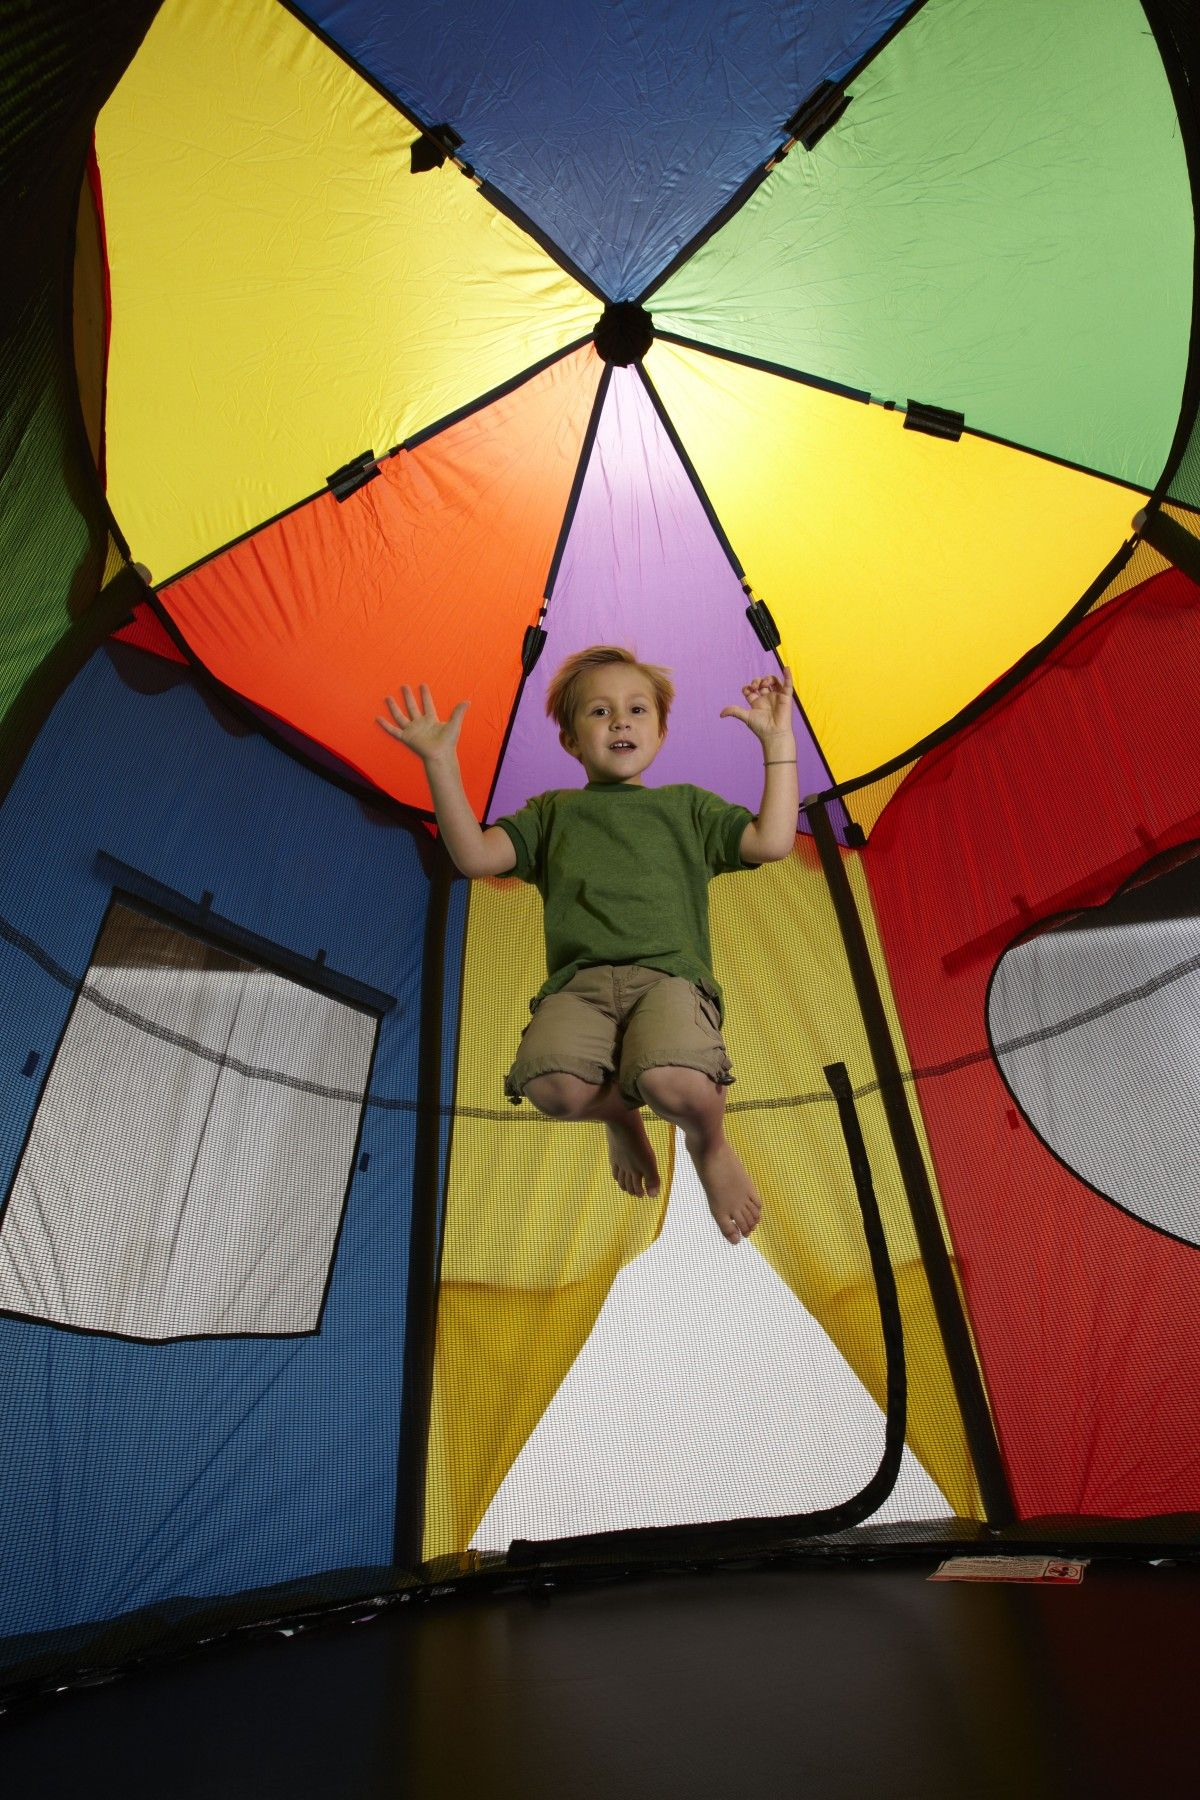 Jumpking Tr&oline Circus Tent will fit ASDA Tr&olines Jumpking Tr&olines JumpPODs and Premium Tr&olines.  sc 1 st  Pinterest & 8ft Trampoline Circus Tent | Outside crafts | Pinterest | 8ft ...